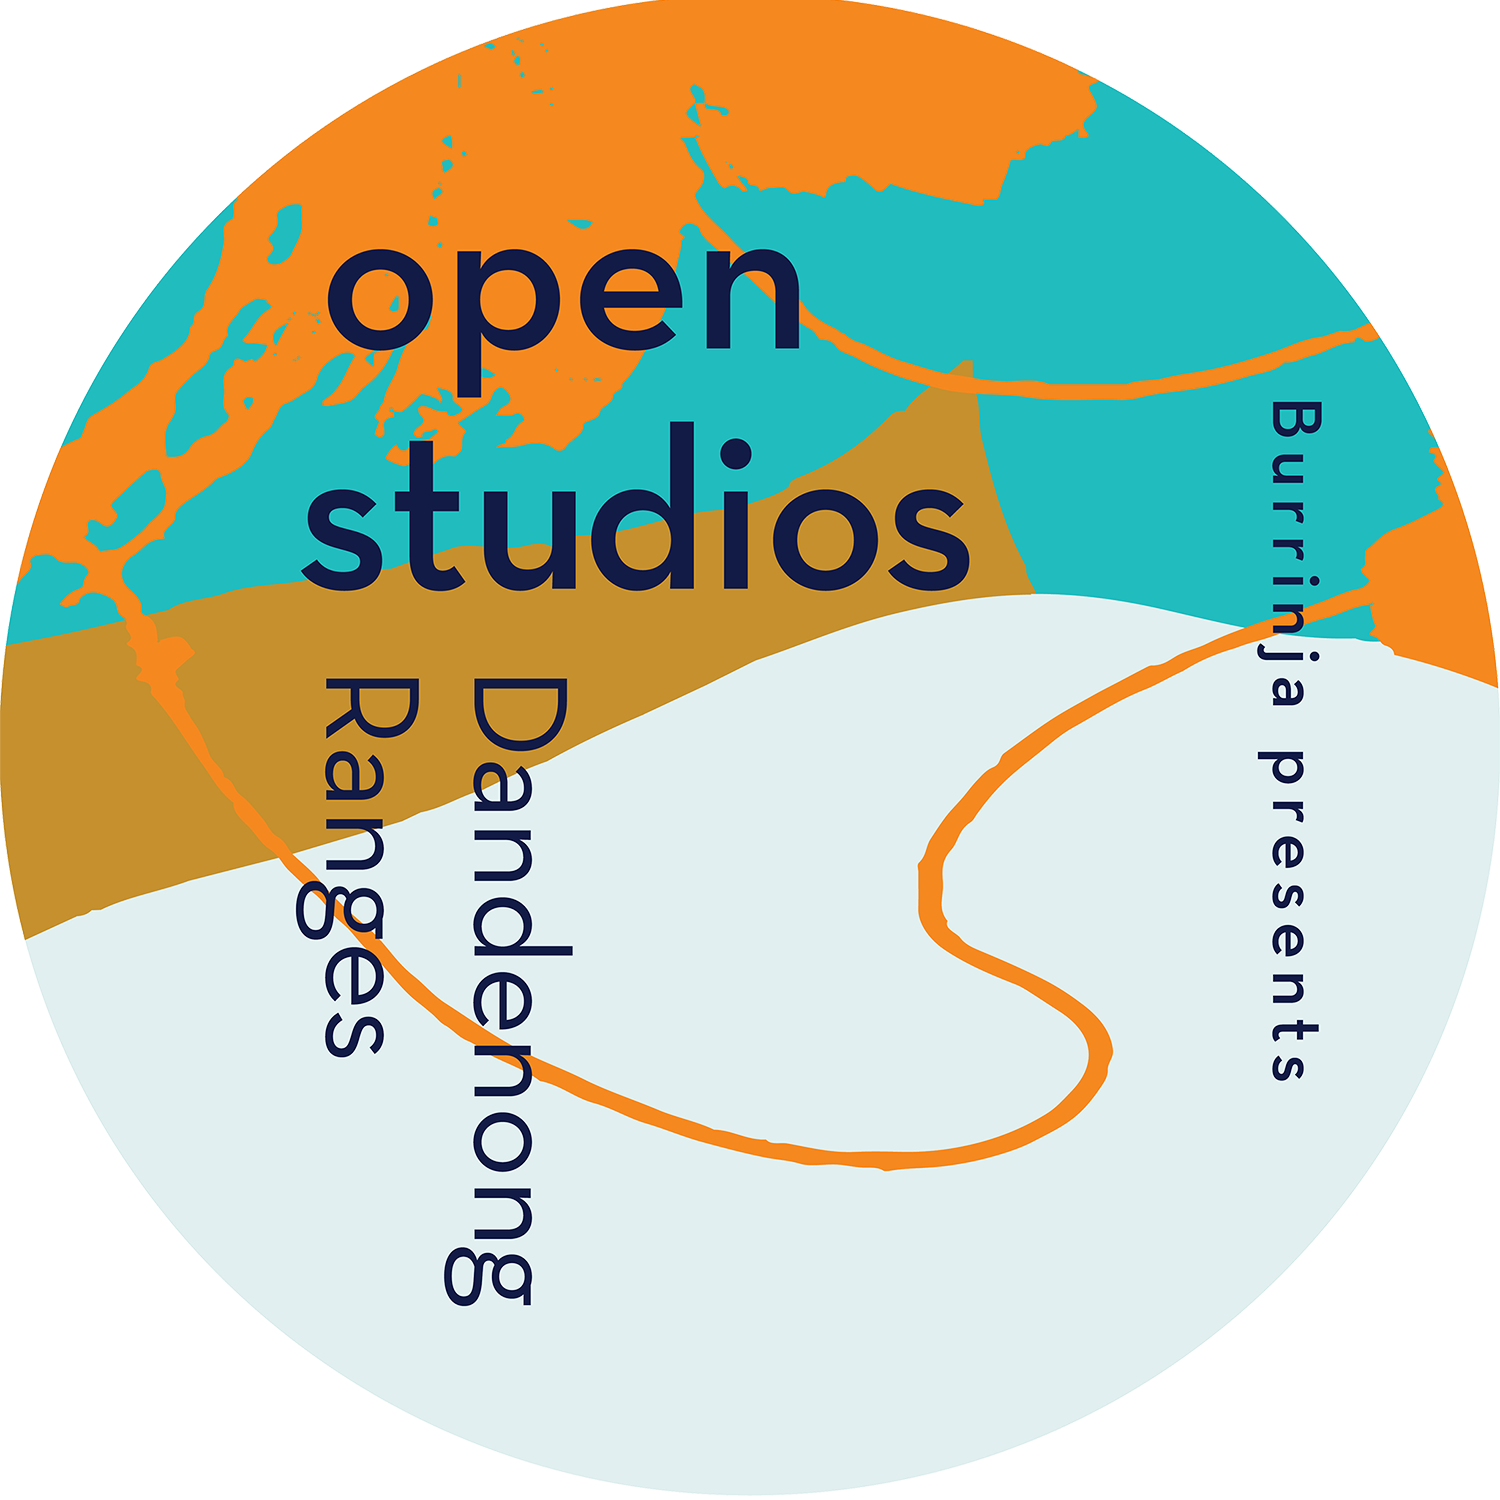 Dandenong Ranges Open Studios Weekend at Burrinja